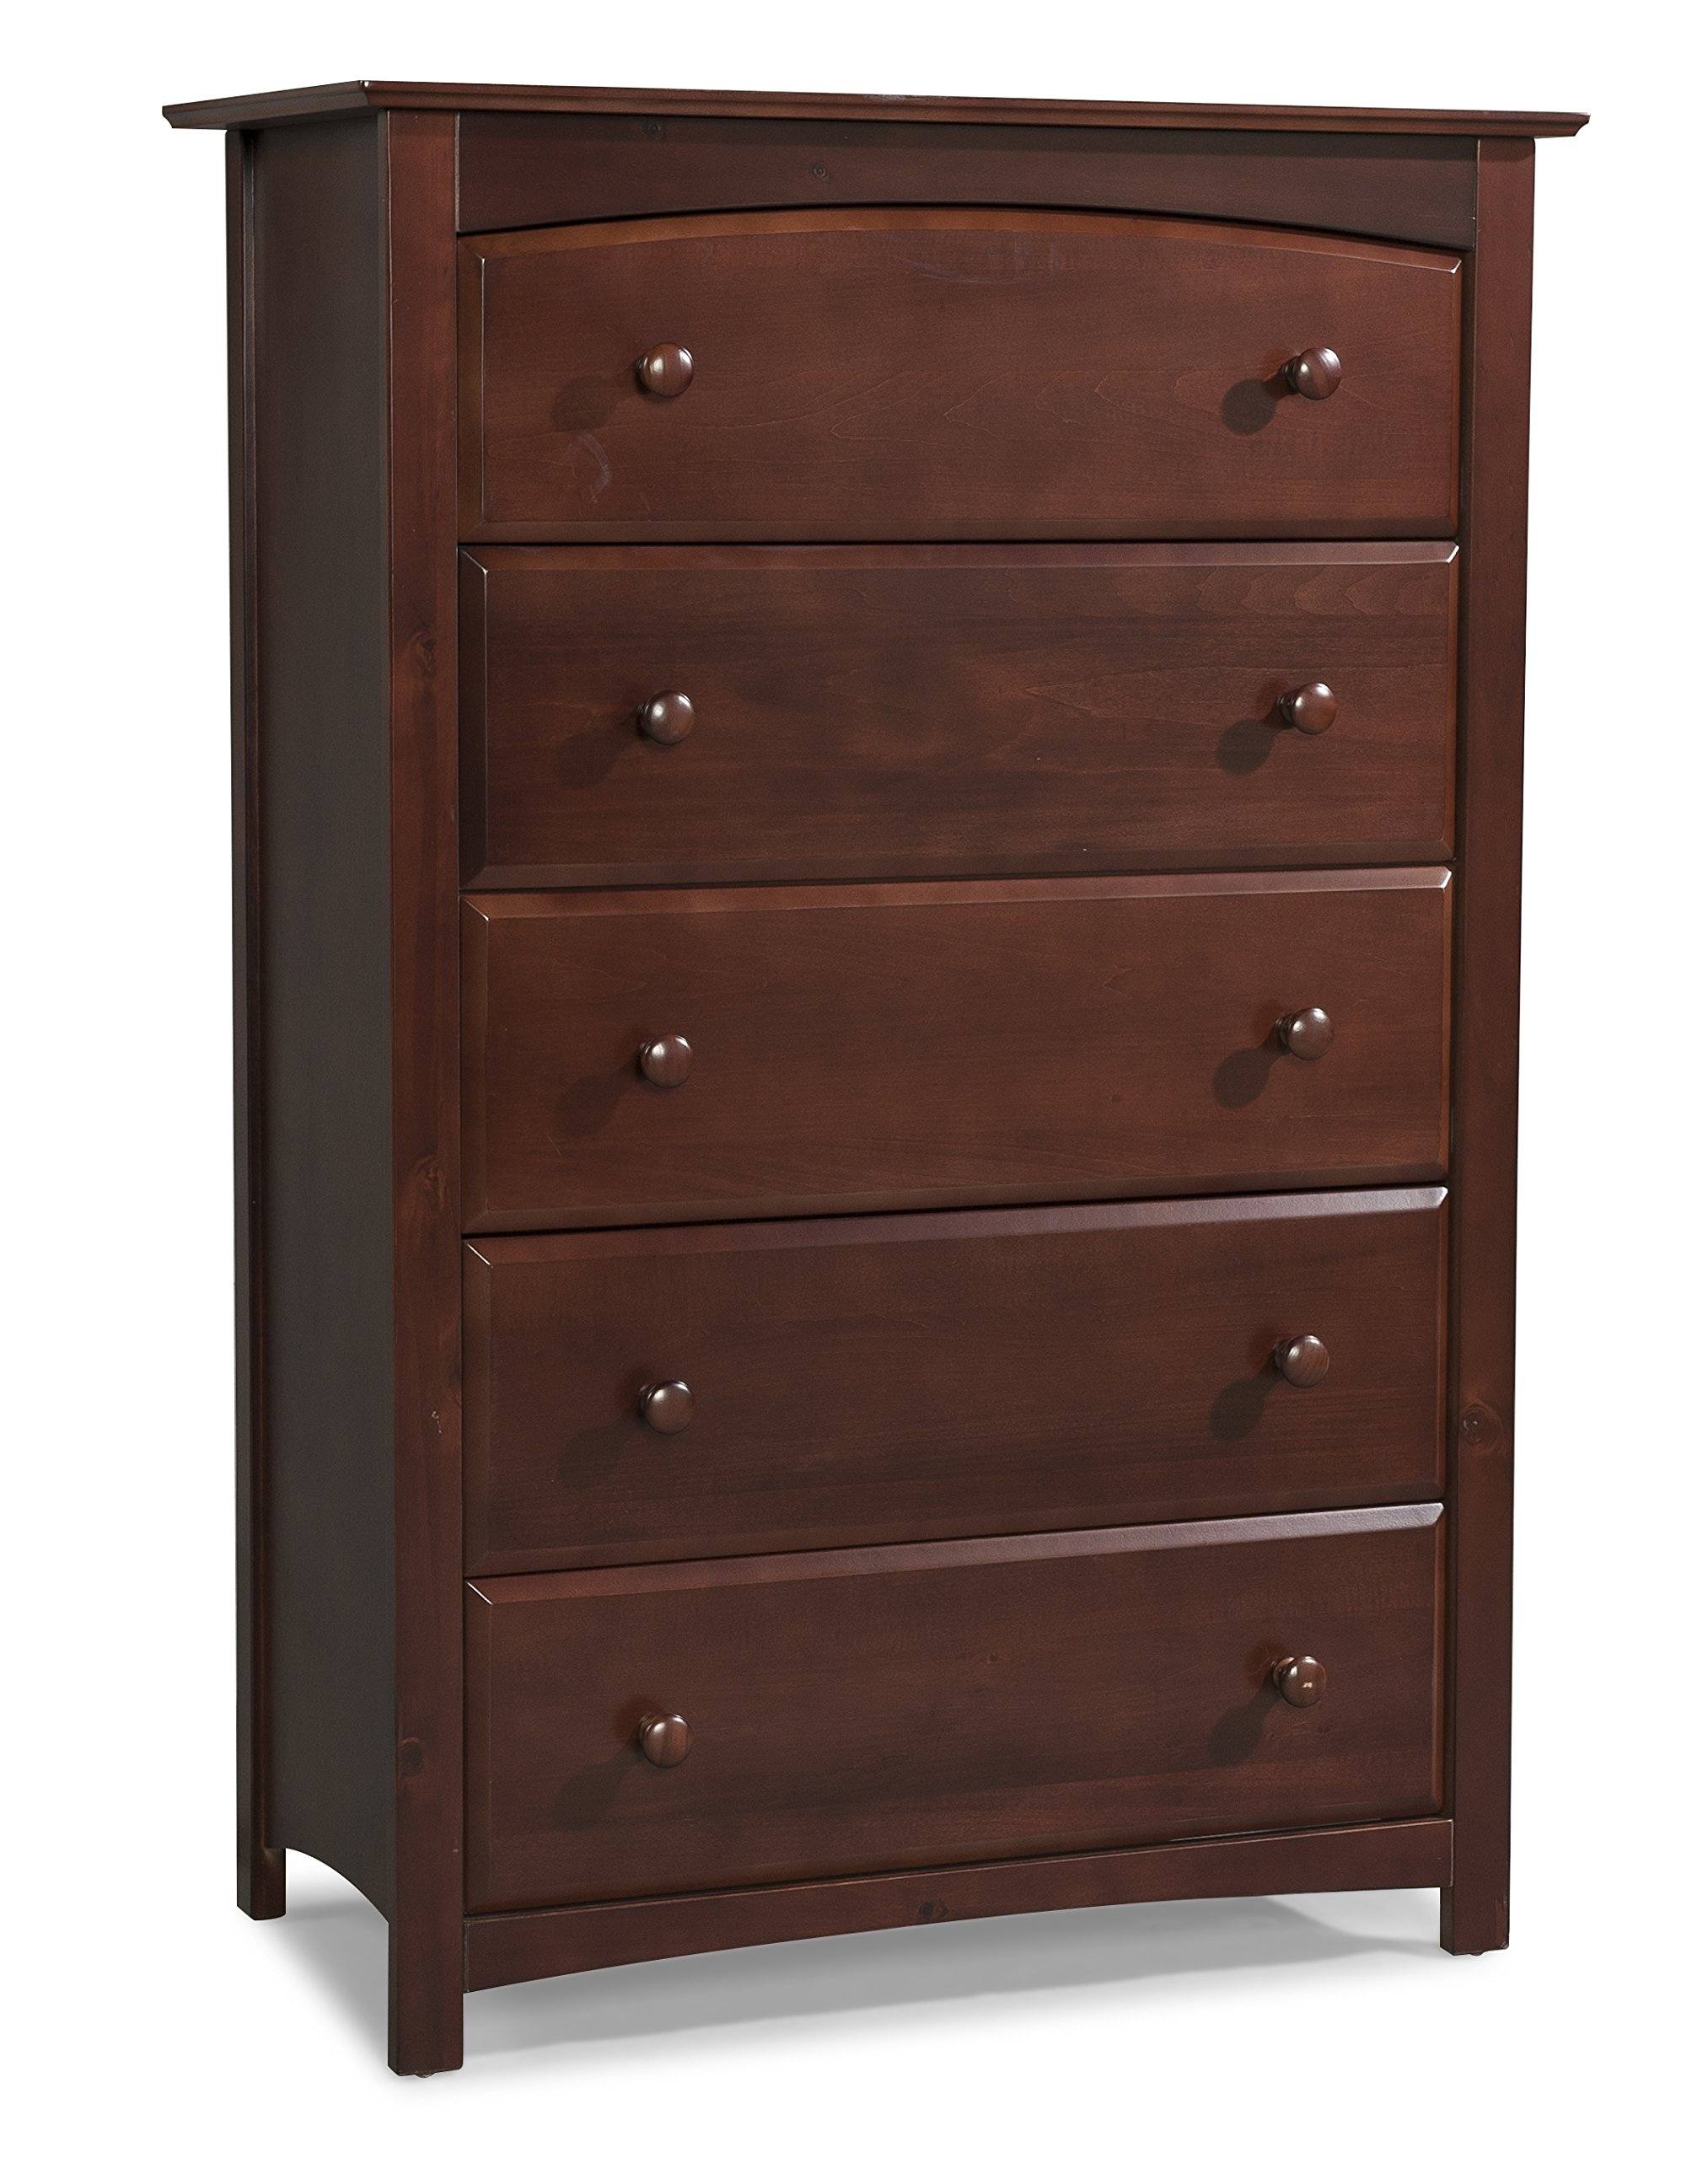 Stork Craft Kenton 5 Drawer Universal Dresser, Cherry